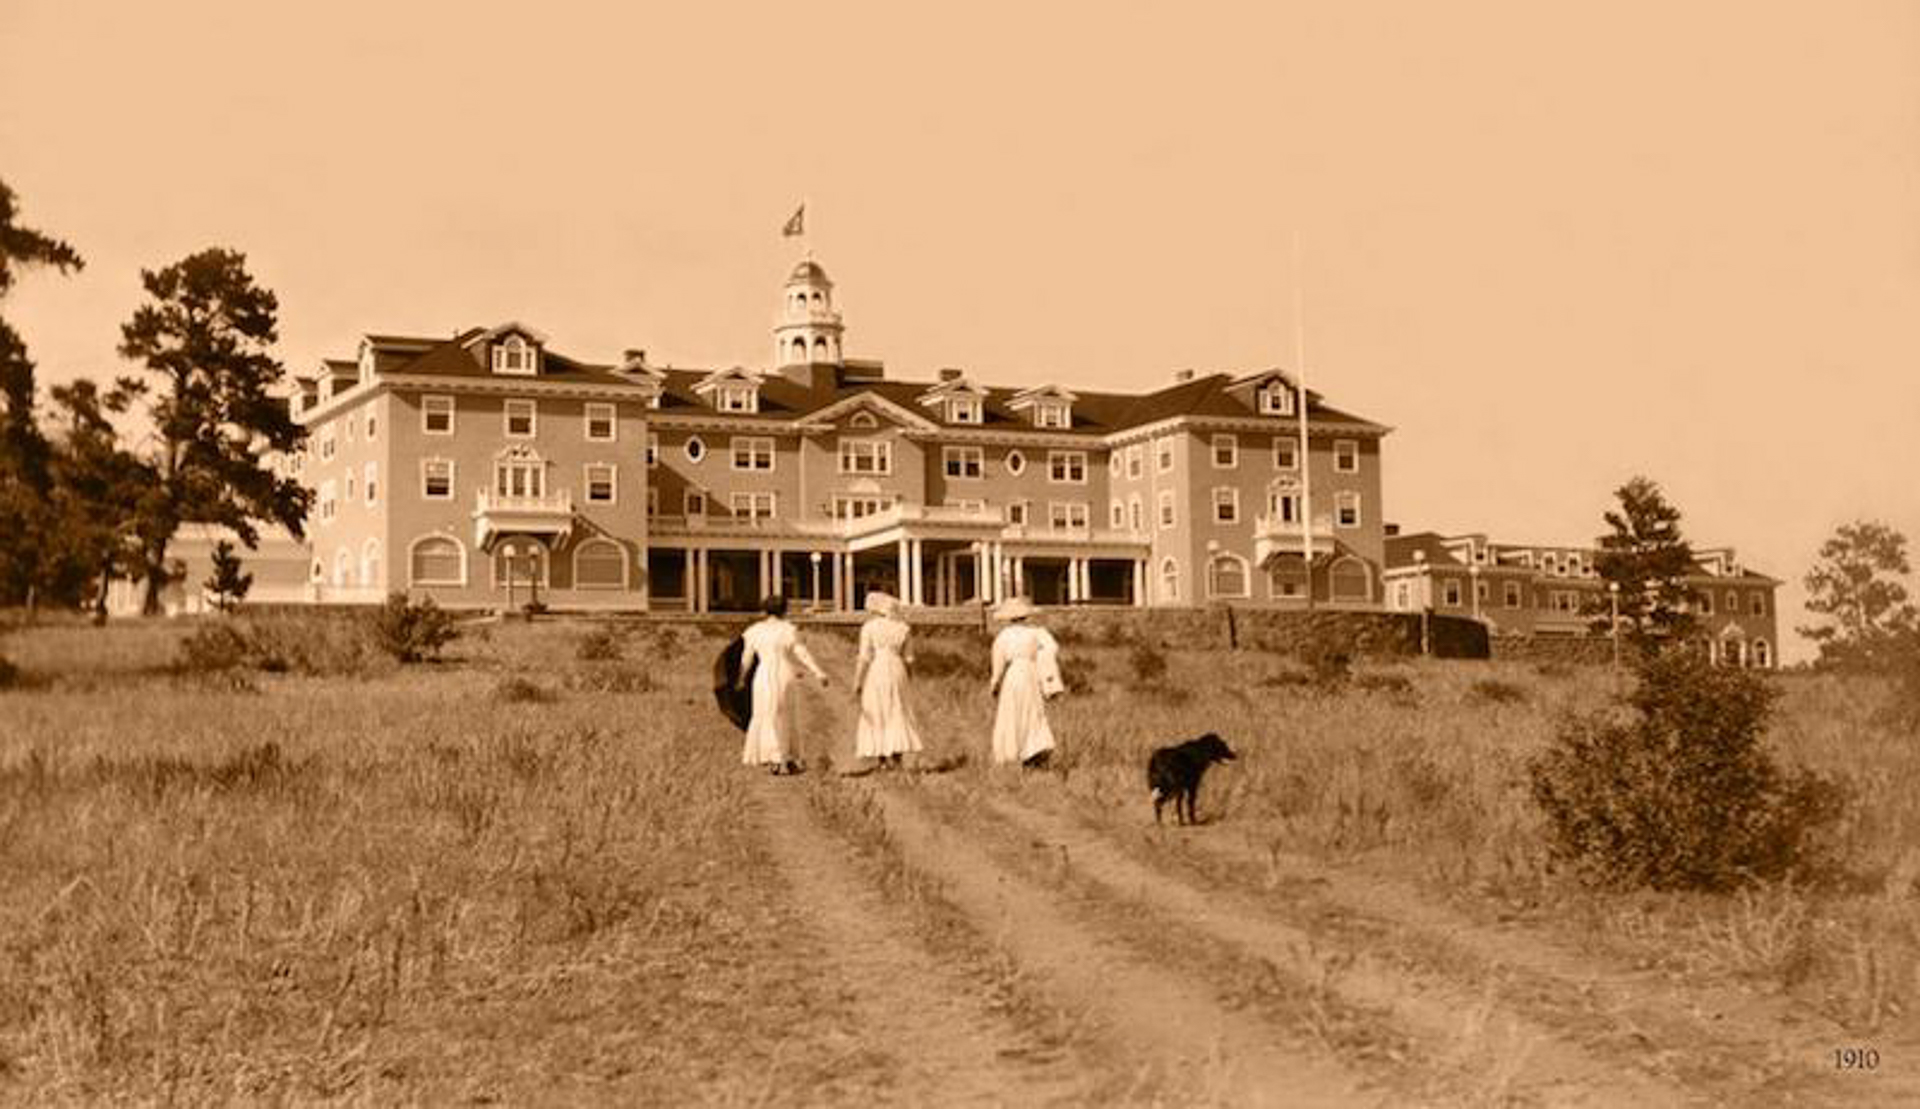 The Shining Hotel The Scary Building That Inspired Stephen King